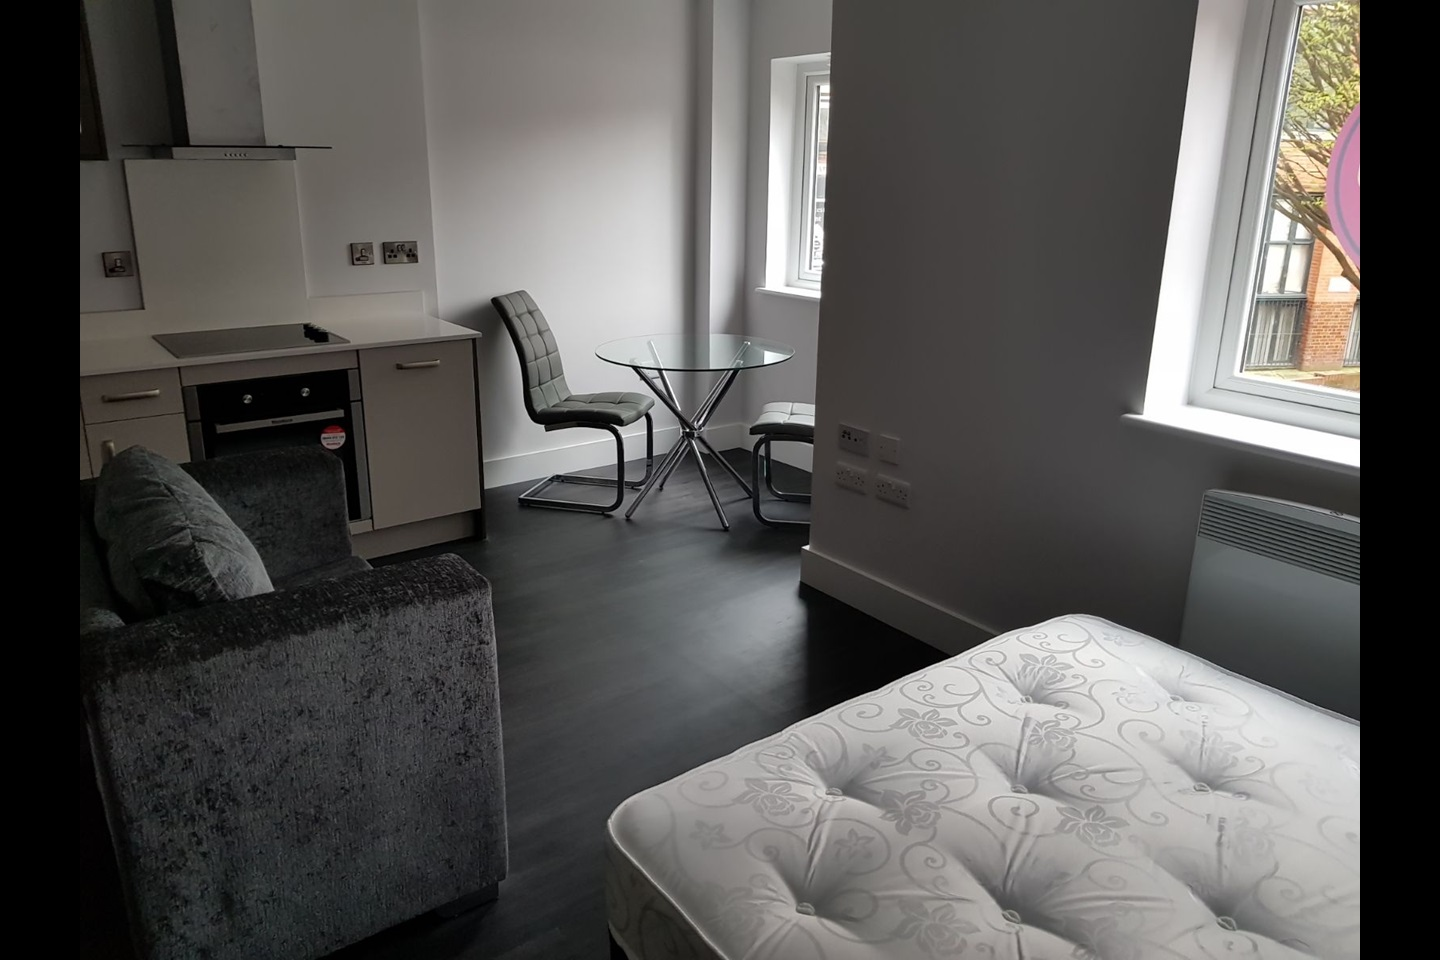 Leicester Studio Flat Aria Apartments Le1 To Rent Now For